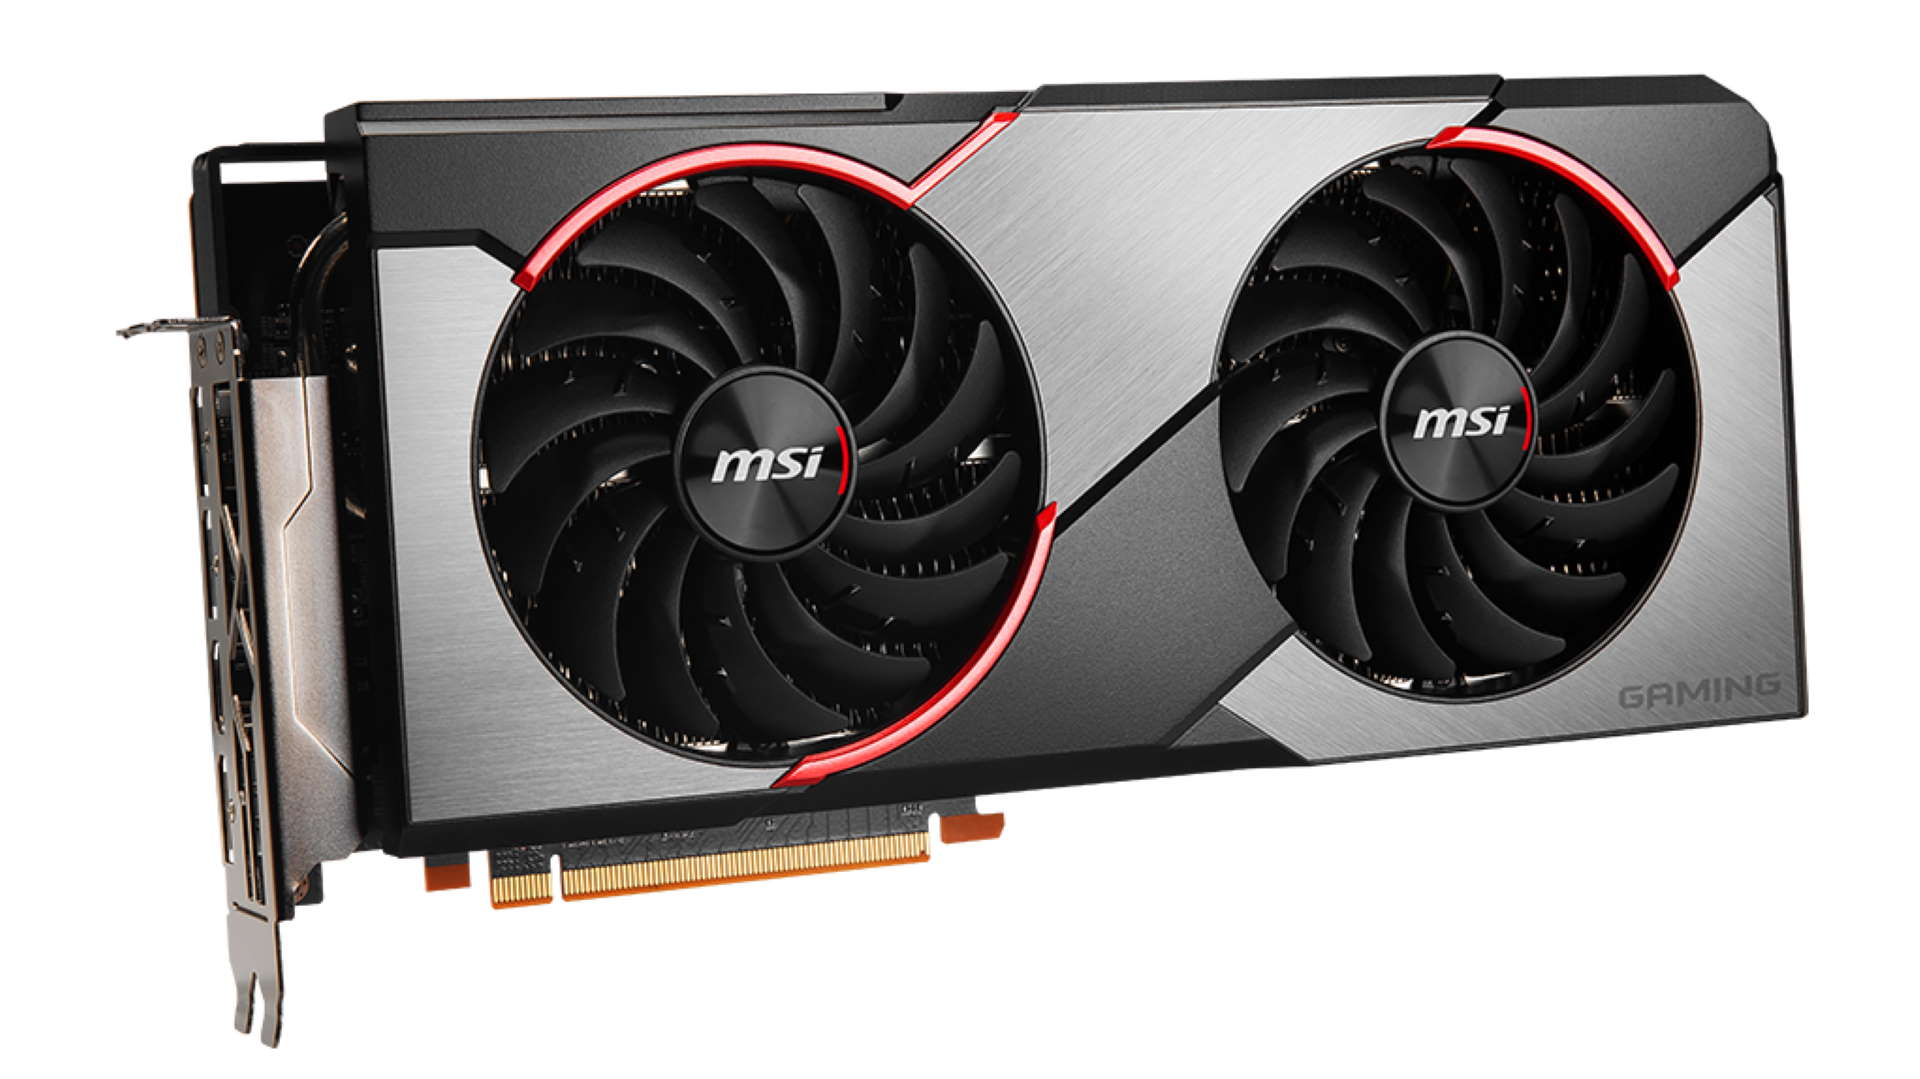 AMD gave MSI RX 5600 XT memory rated at 12Gbps… and then changed the spec